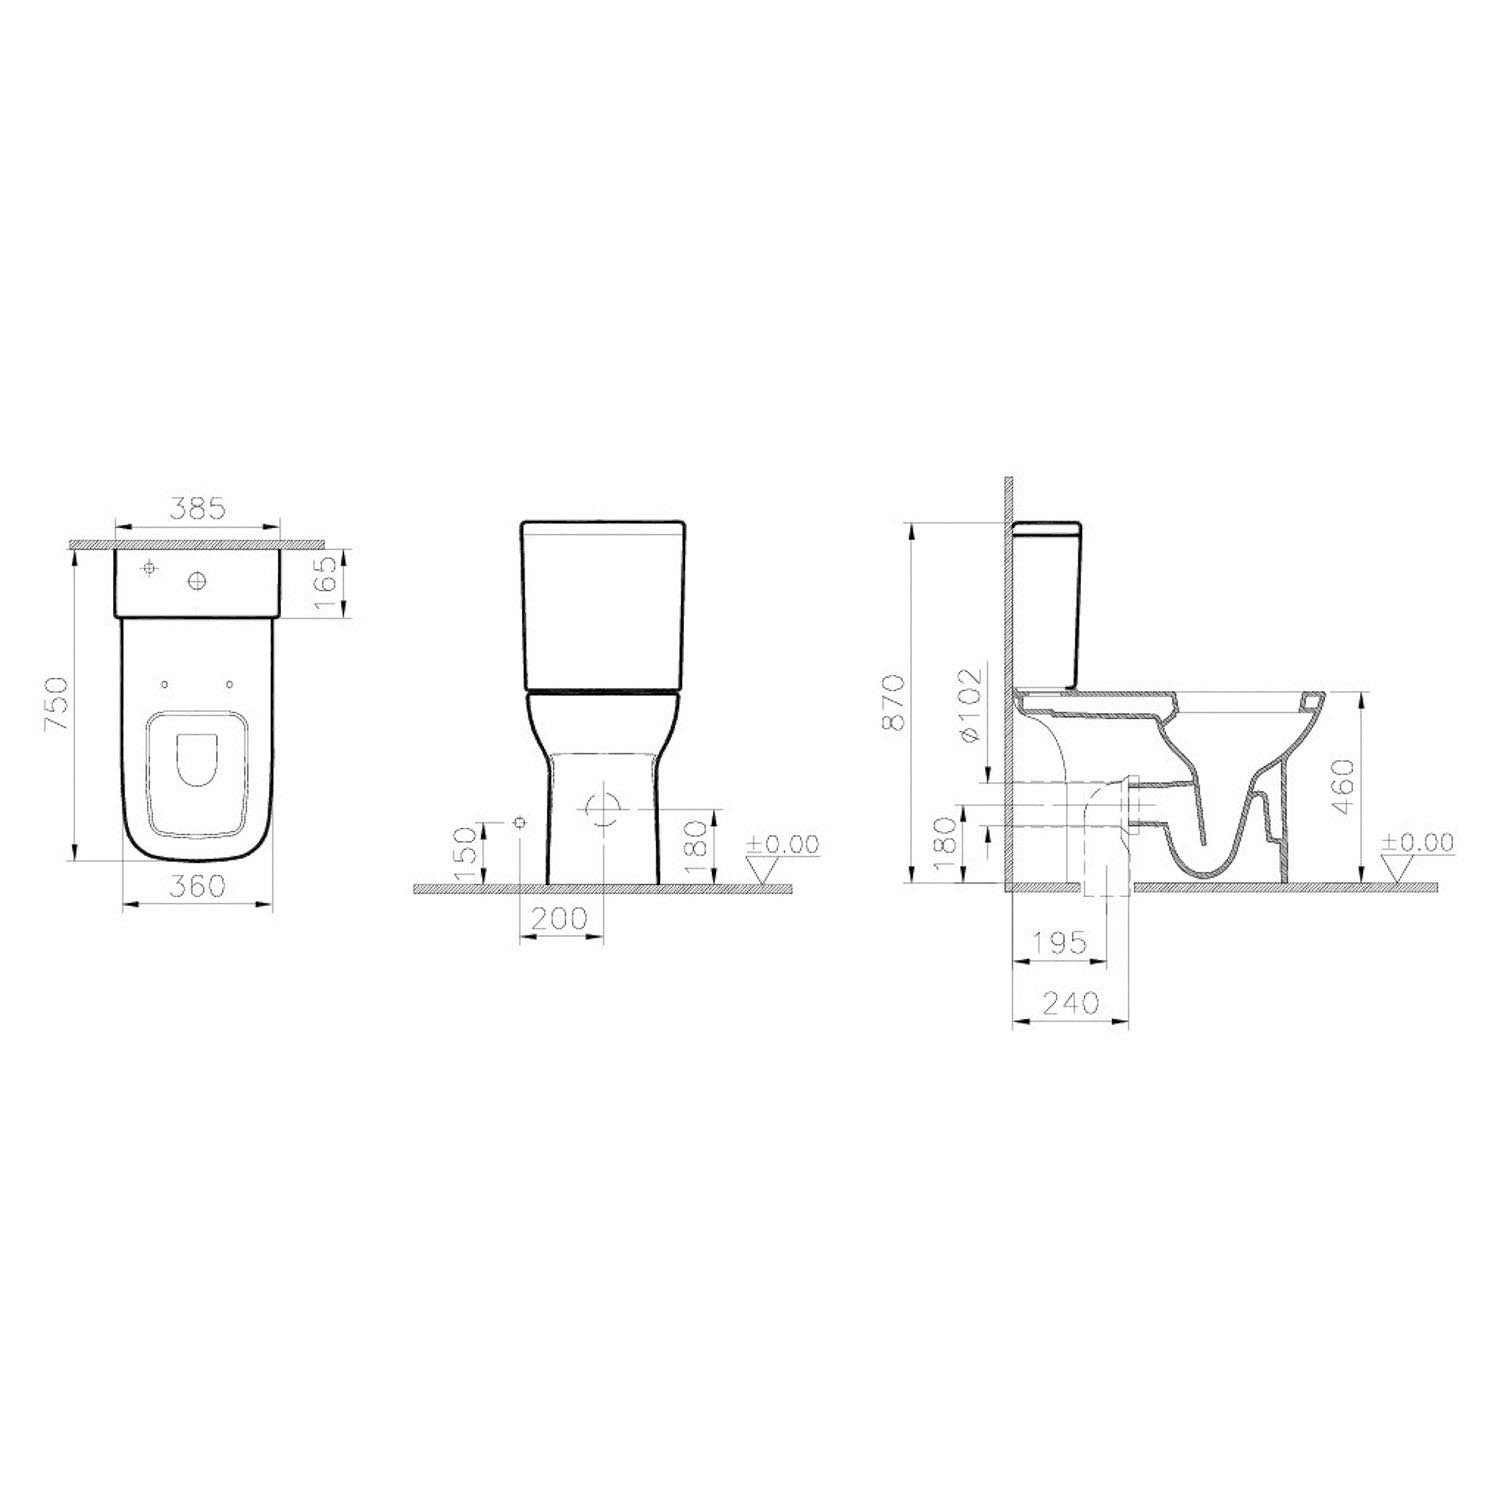 Consilio Comfort Height Close Coupled Toilet with the seat cover and cistern dimensional drawing